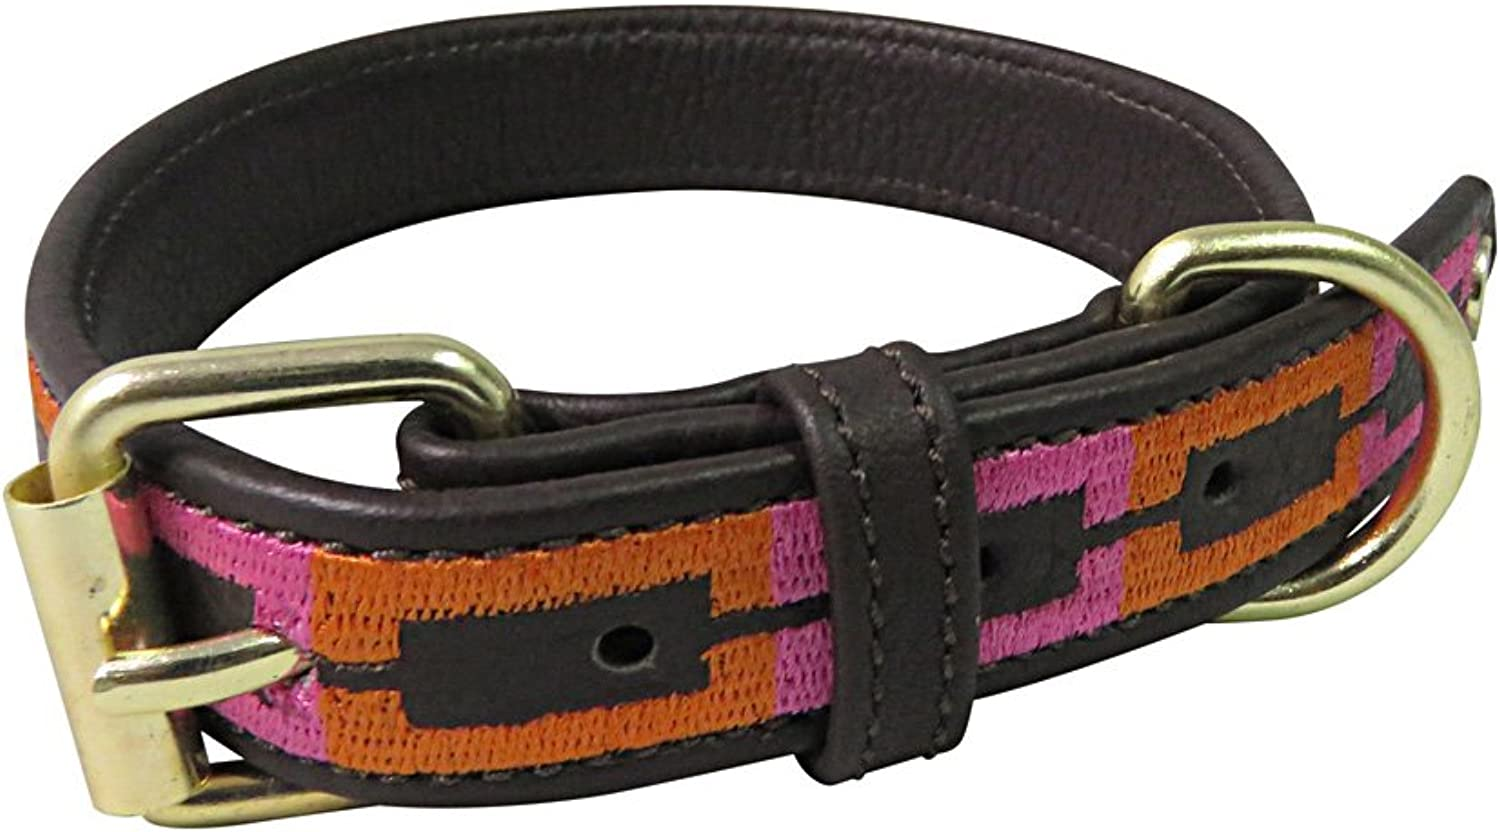 Halo Dog Collar Leather with Sam Dog Collar   color  Brown orange Hot Pink, Size  Small